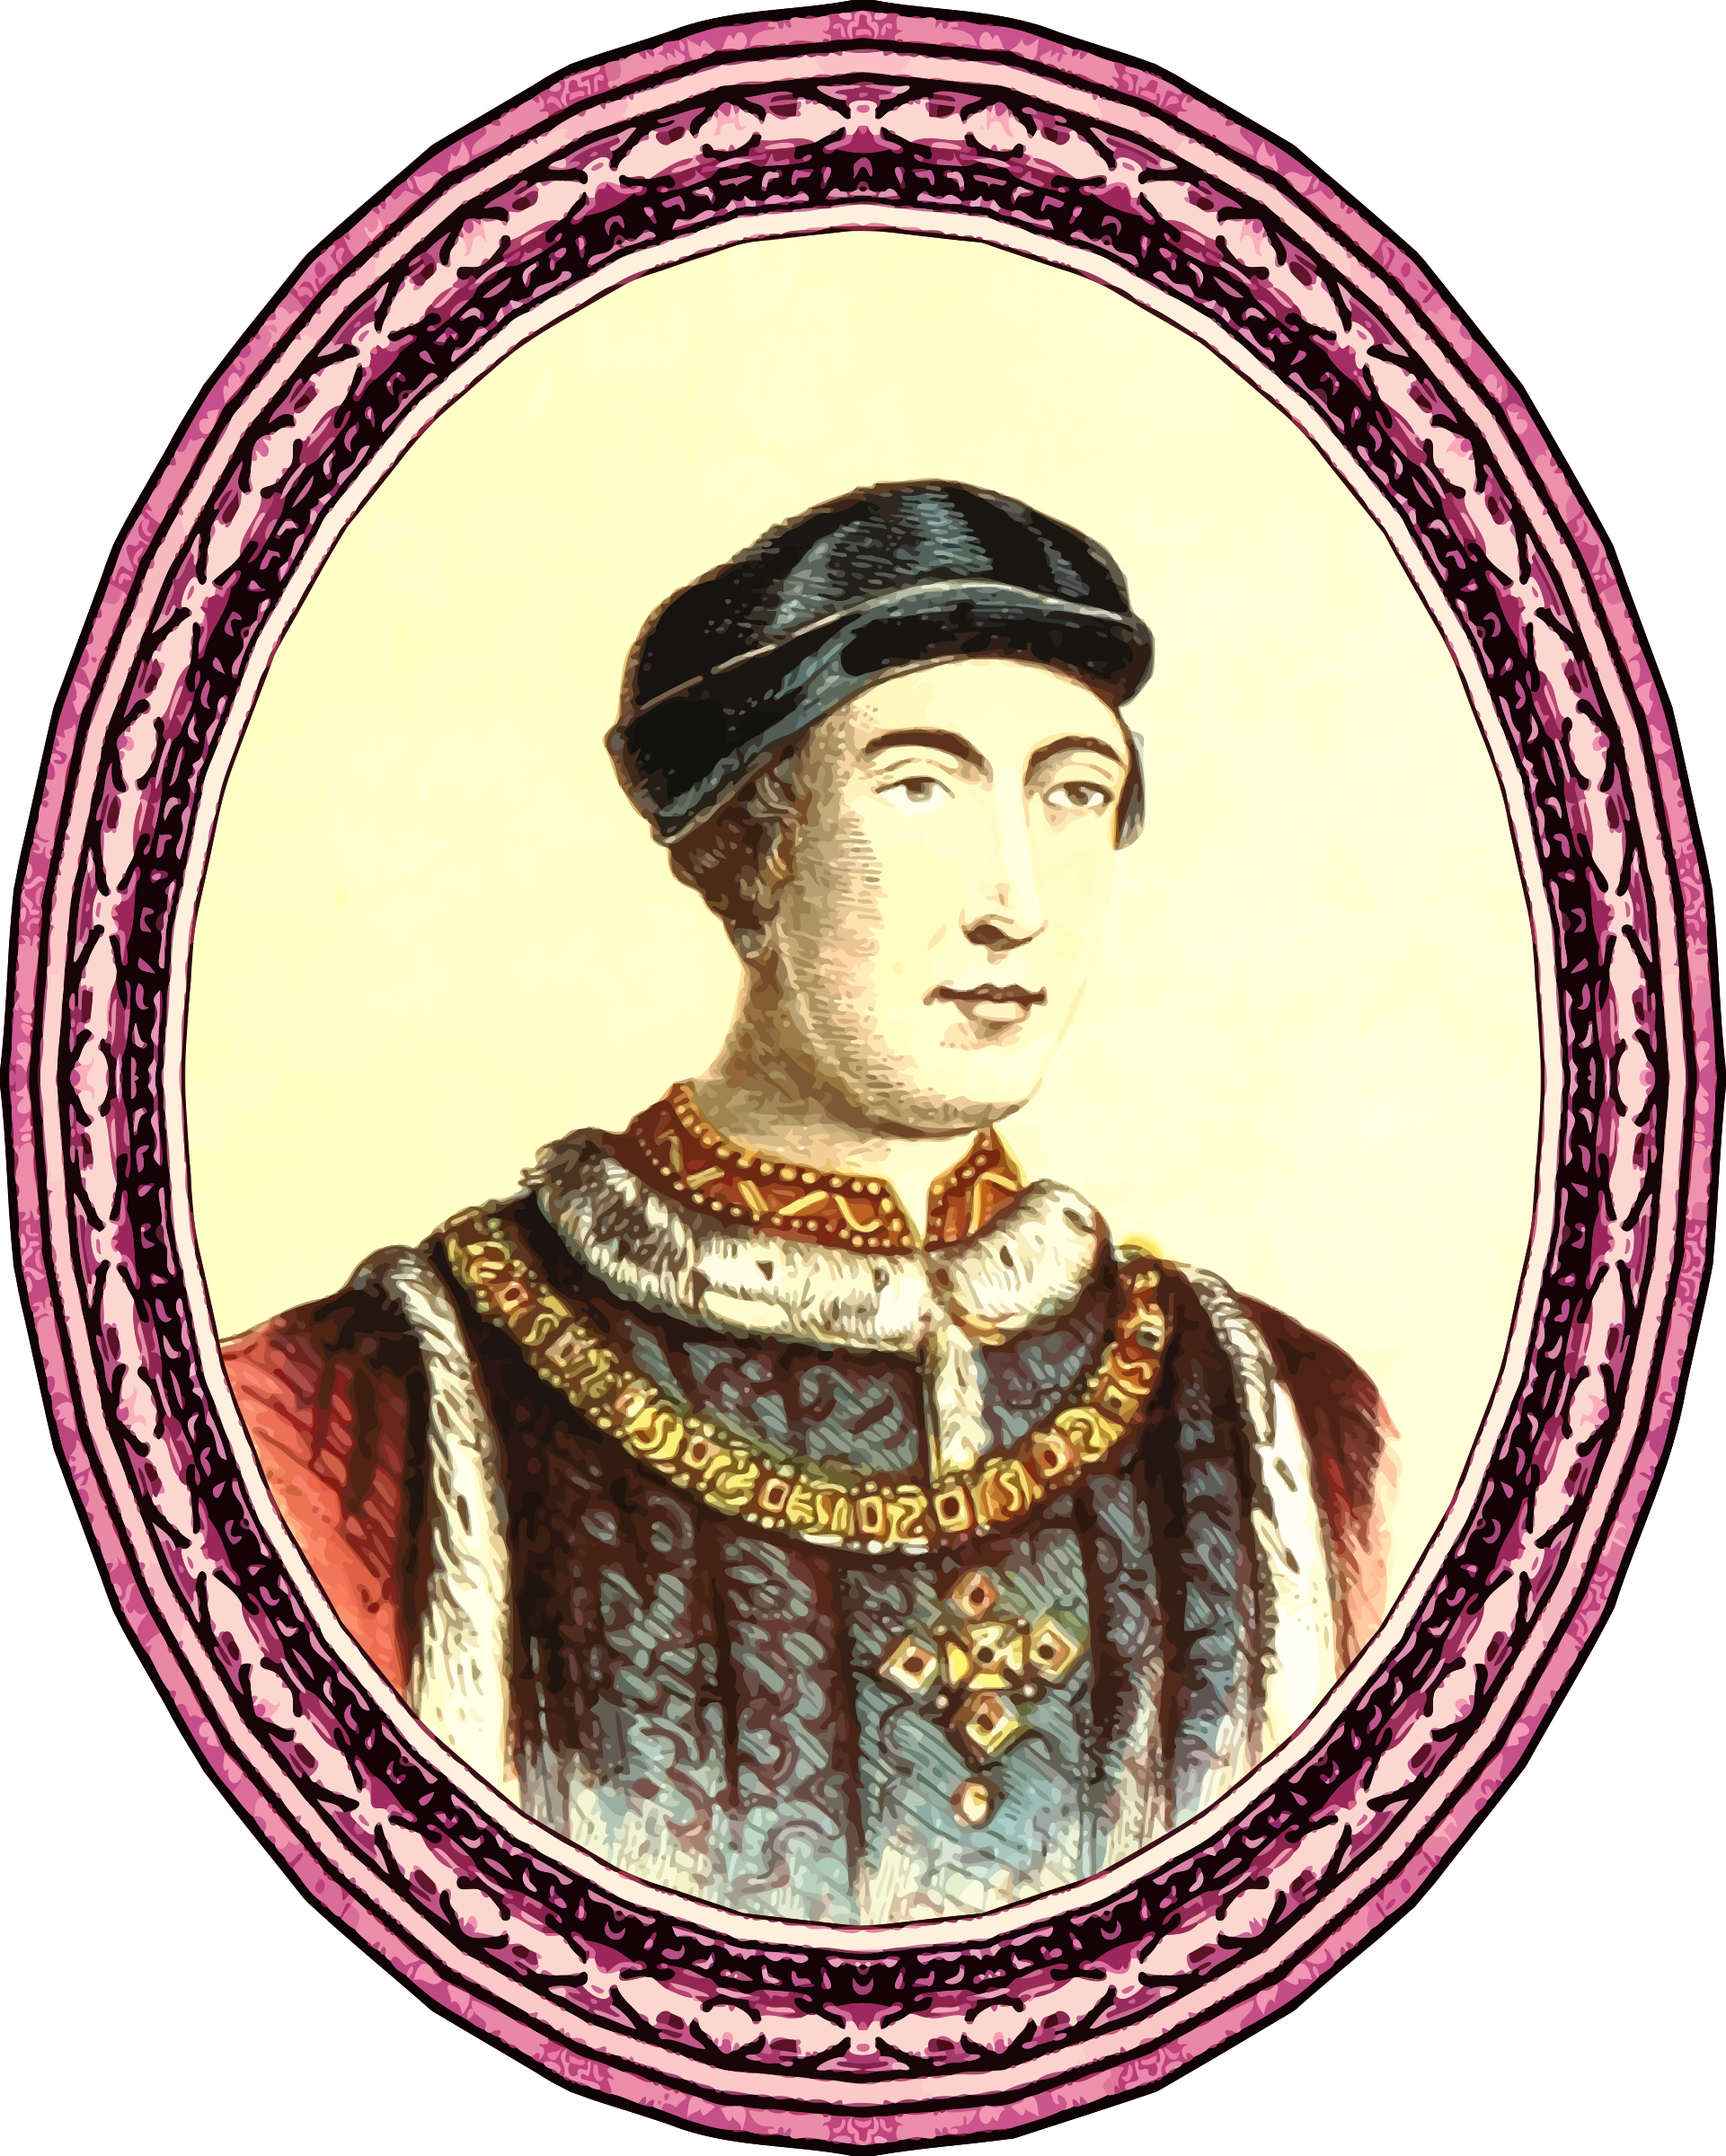 King Henry VI (framed) by Firkin